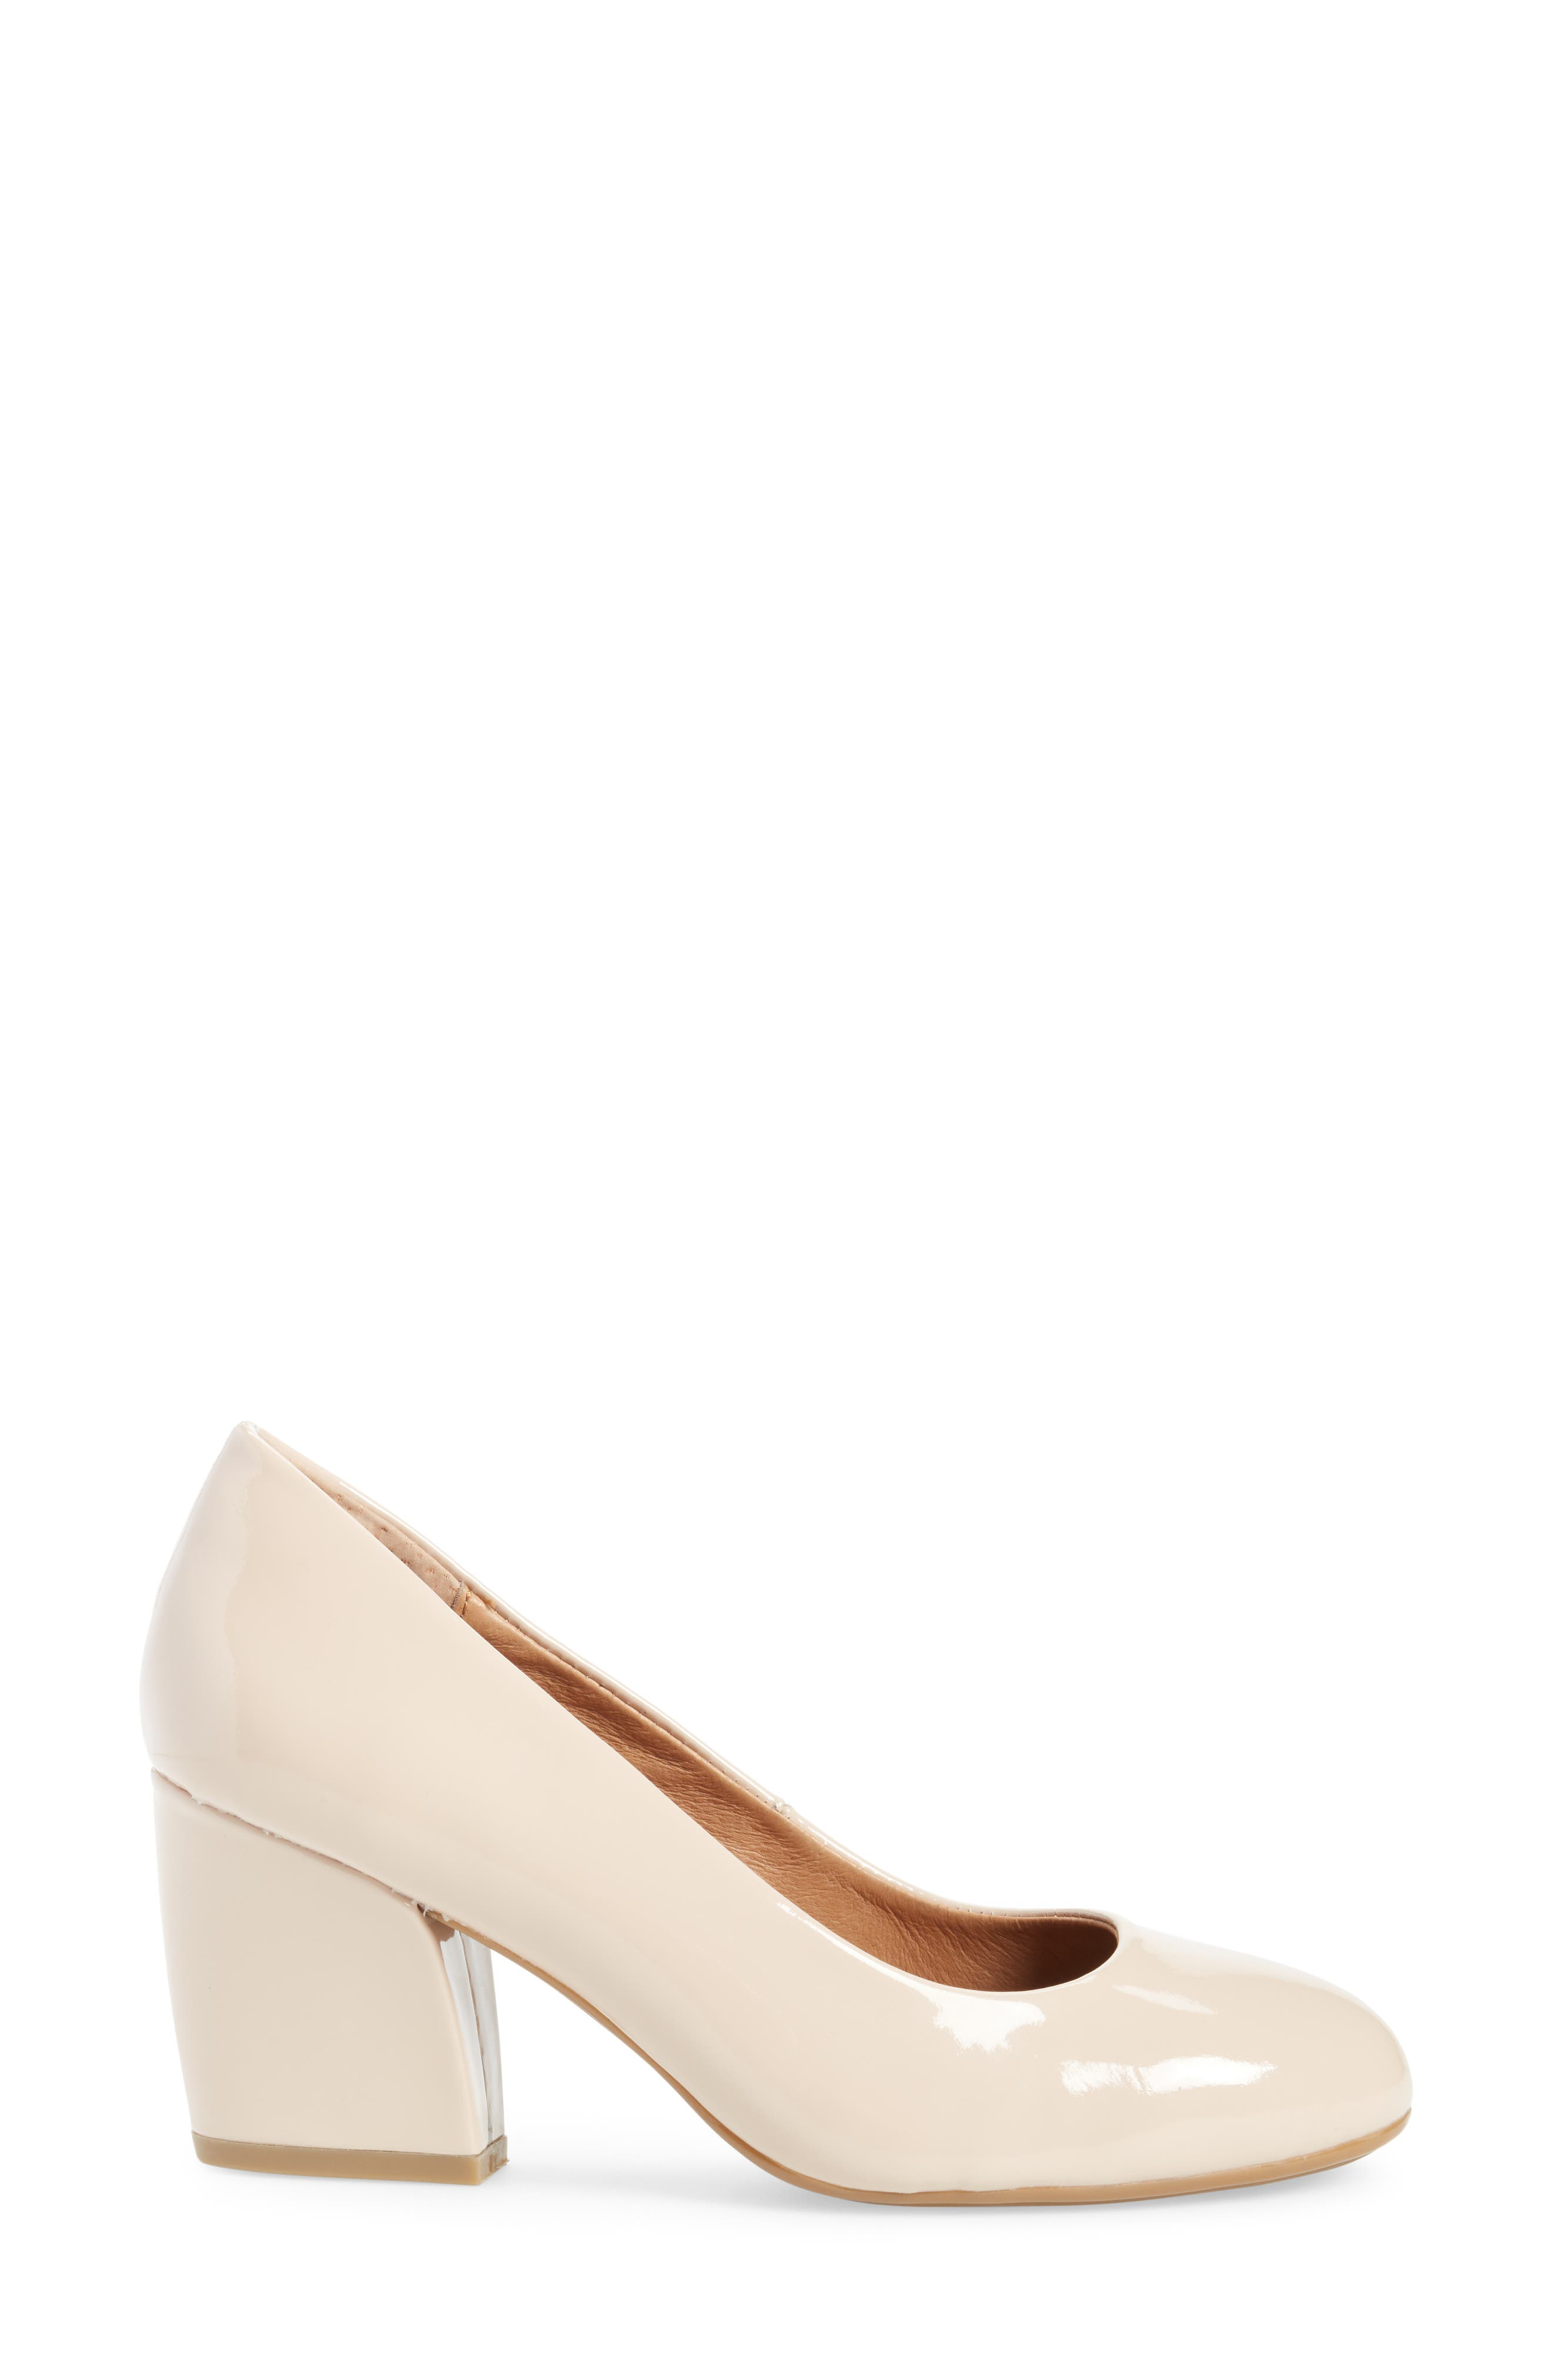 Tamira Pump,                             Alternate thumbnail 3, color,                             NUDE PATENT LEATHER